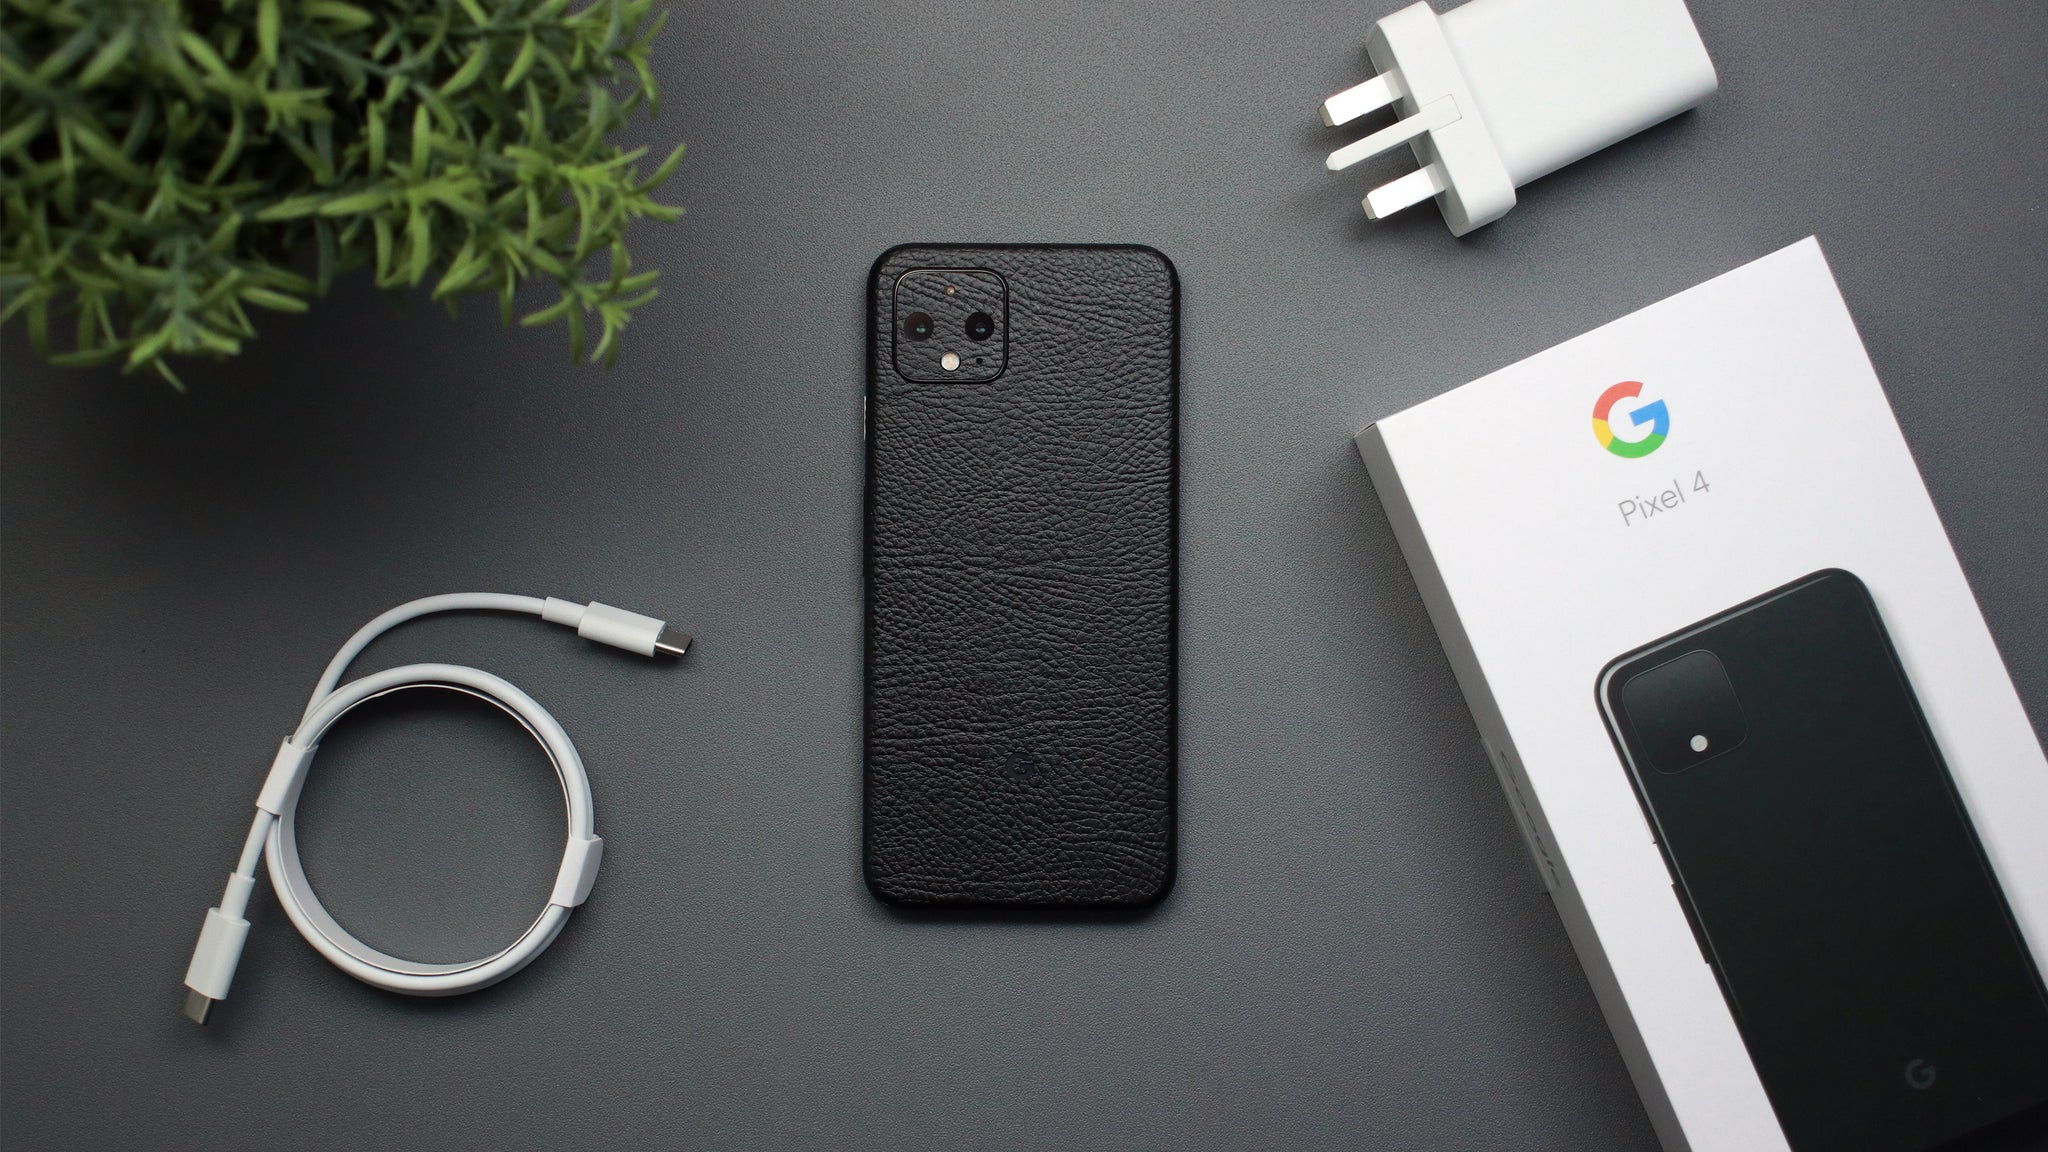 Google Pixel 4 Black Leather Skins